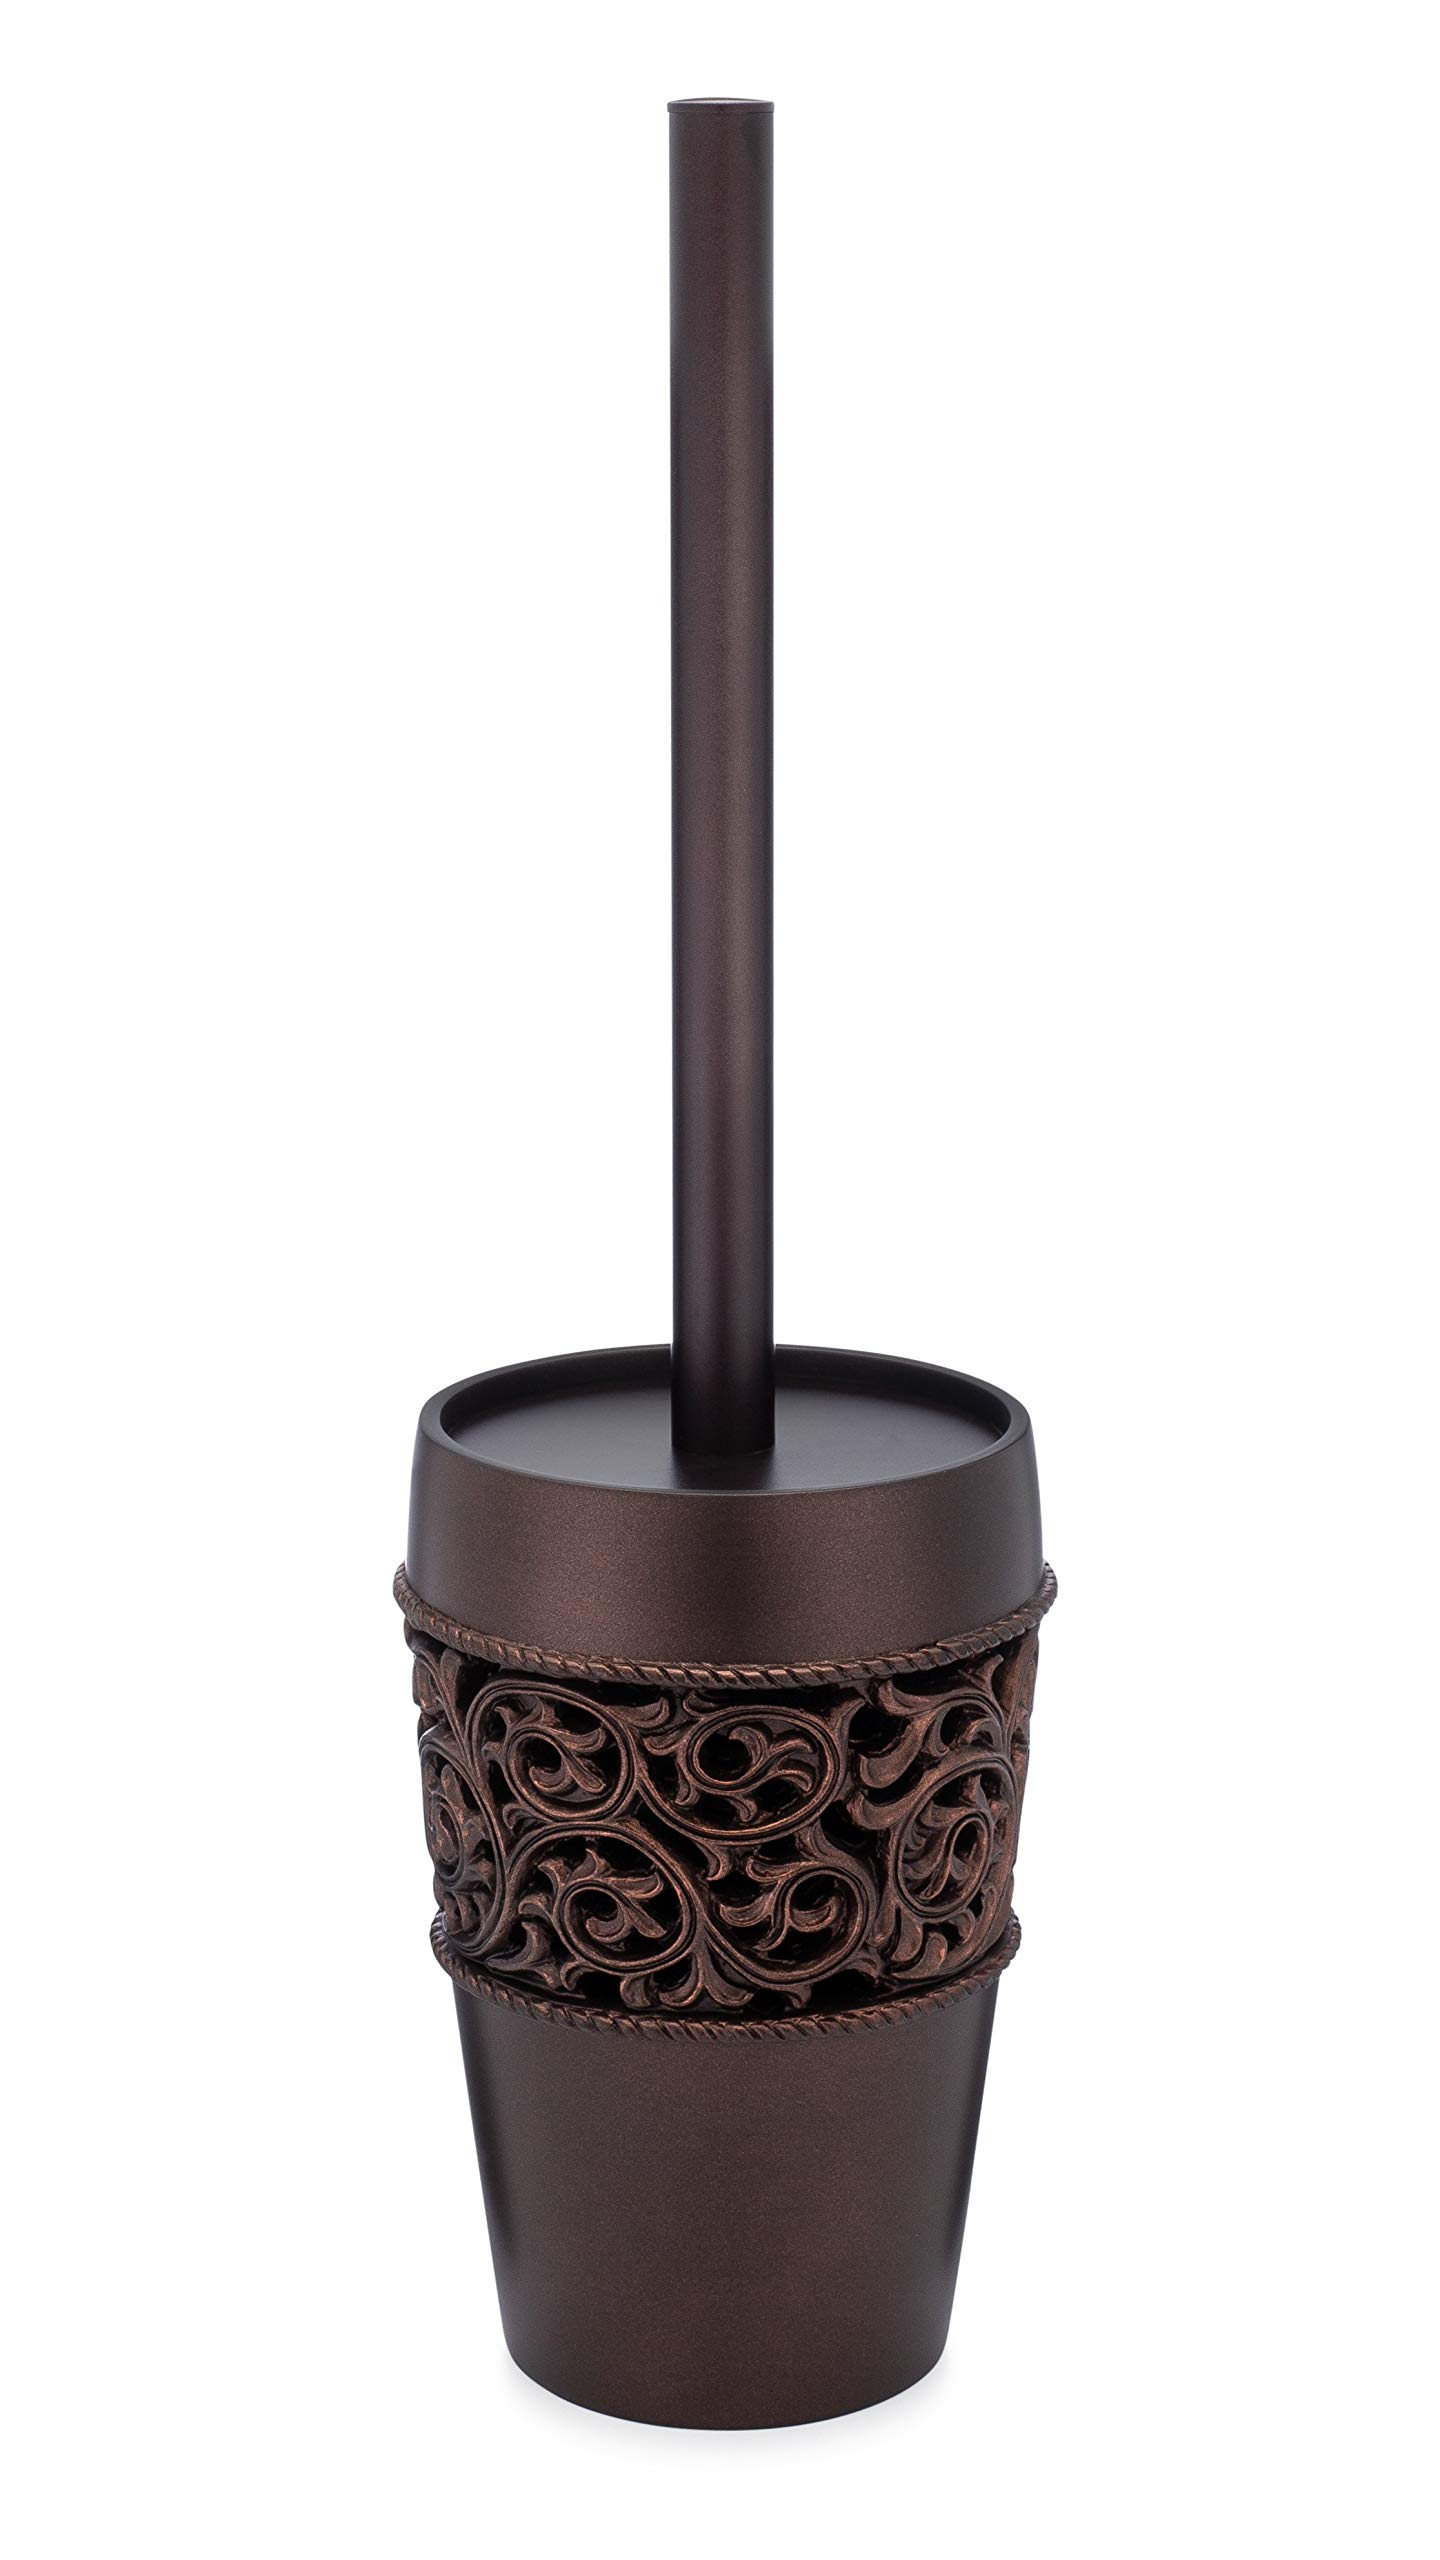 EssentraHome Freestanding Bronze Toilet Brush and Holder with Elegant Design, Rust Resistant